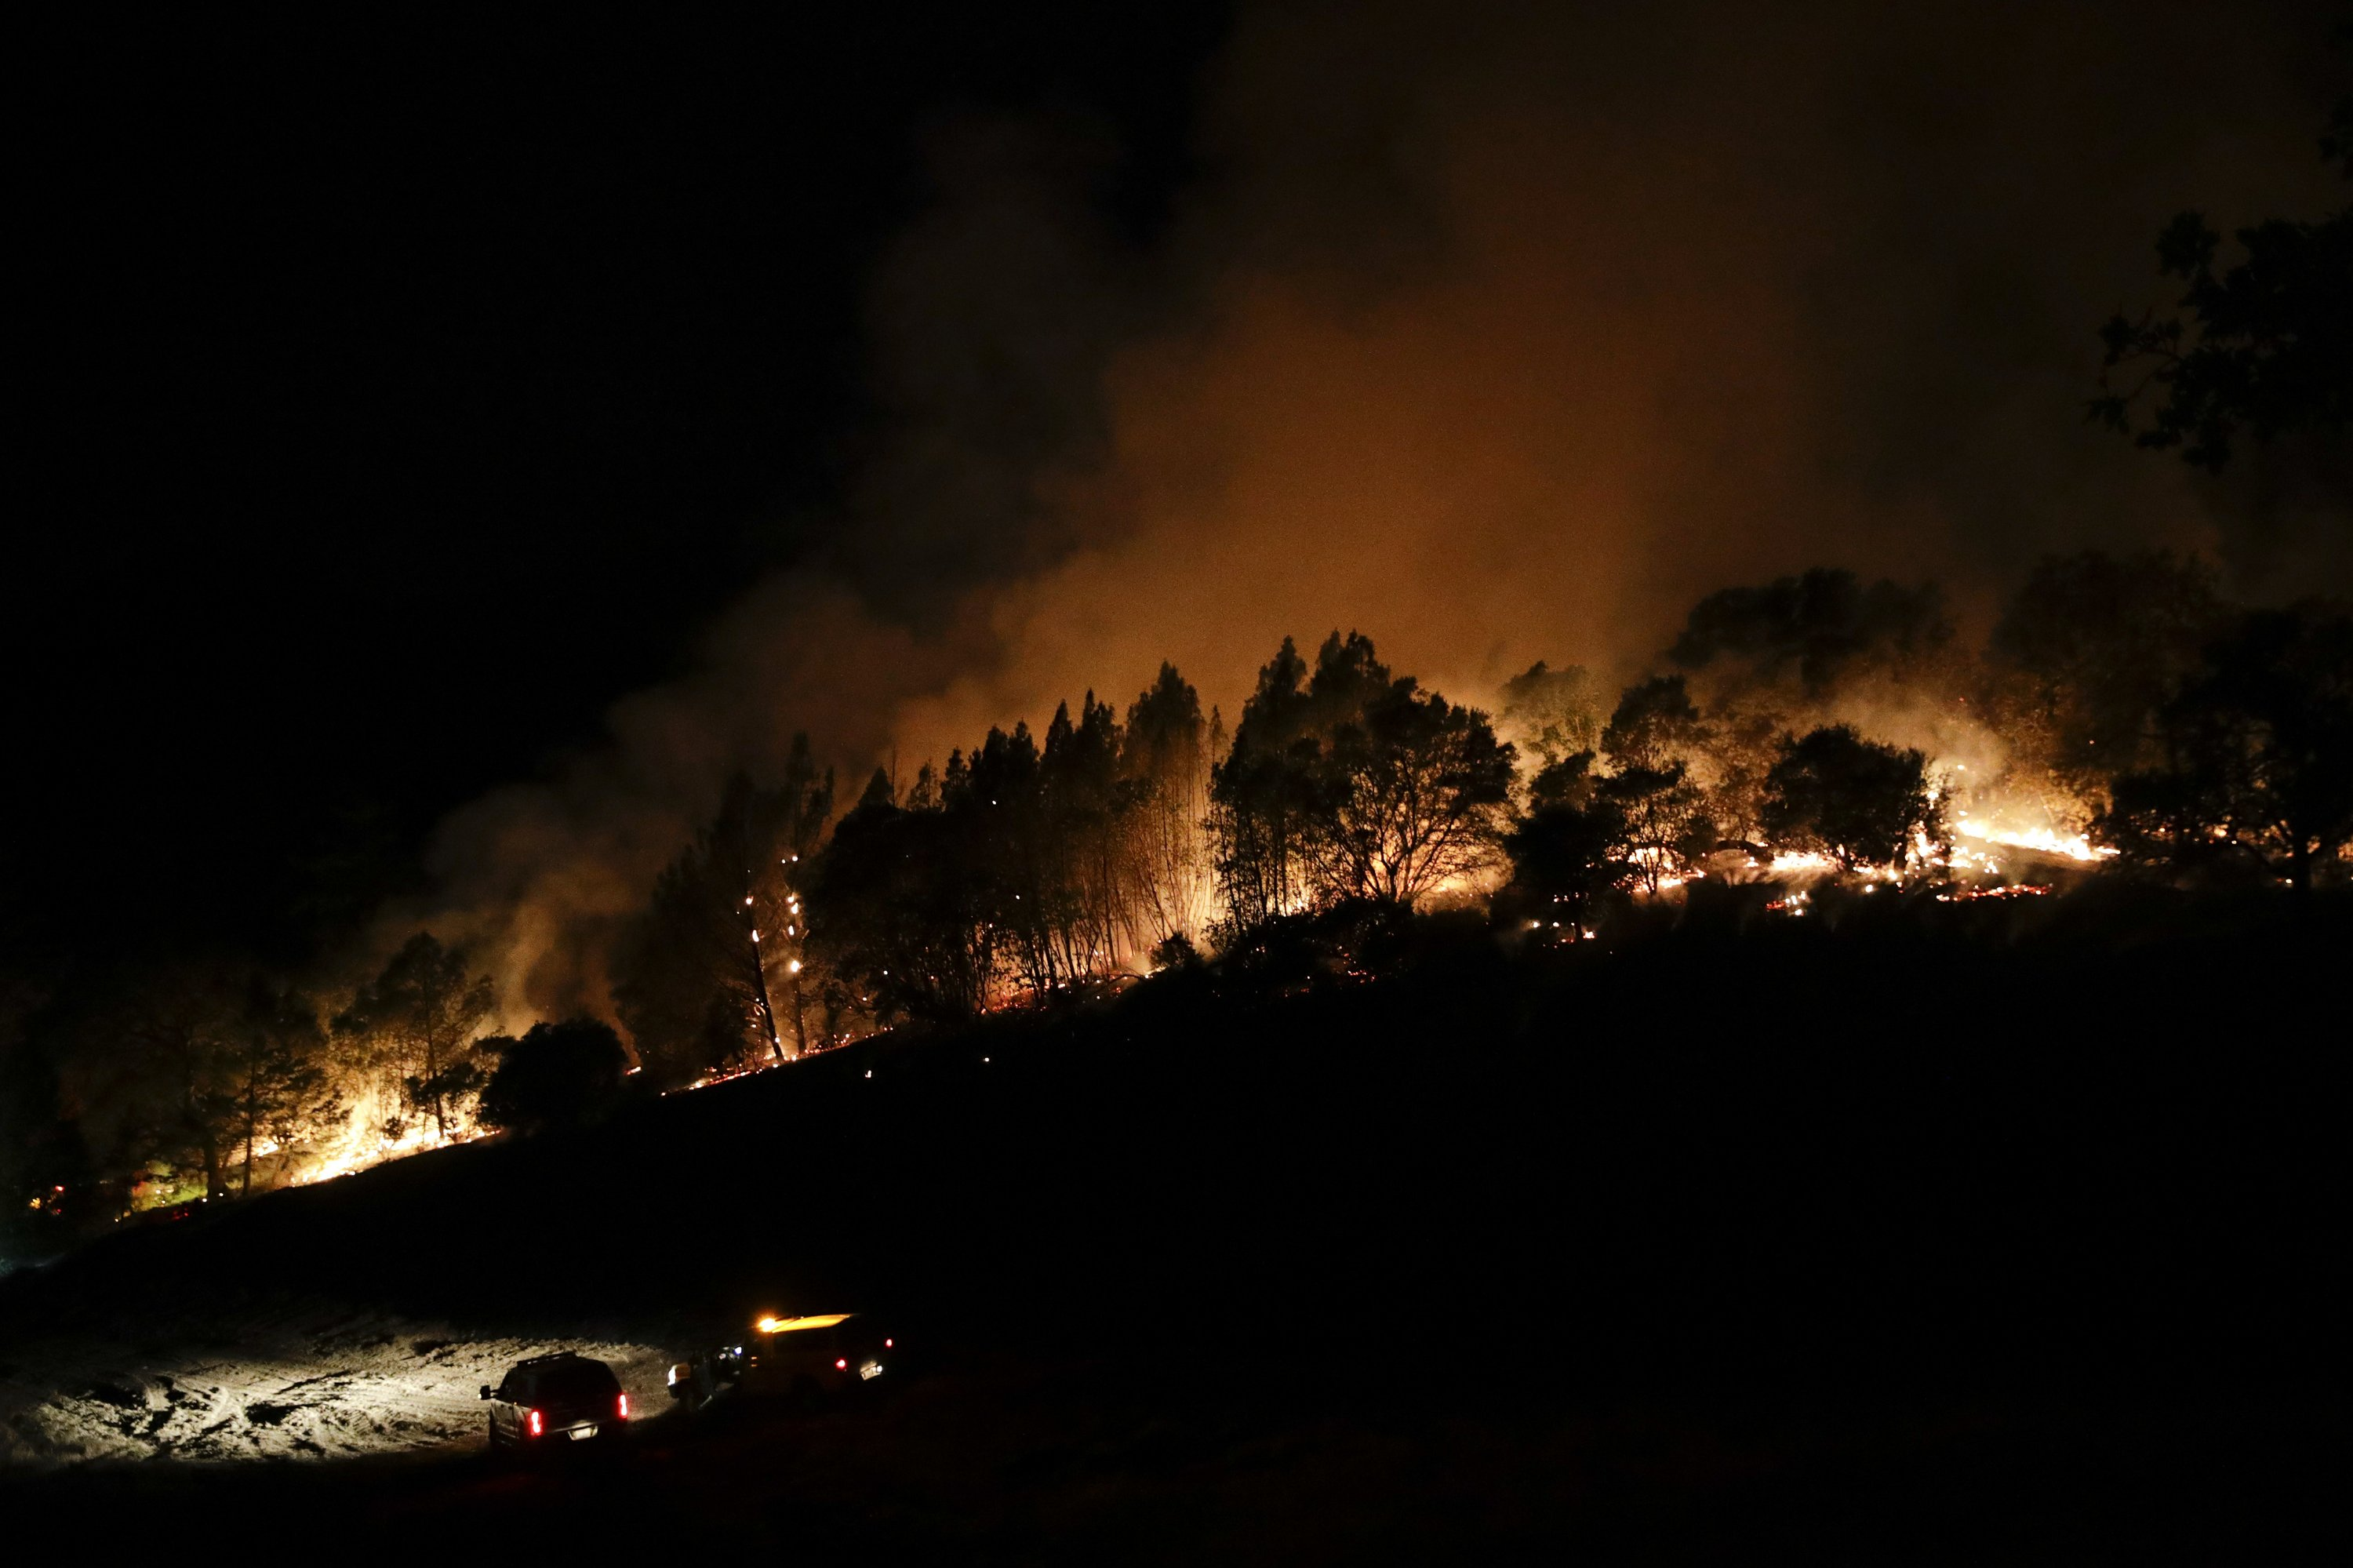 Weary Californians try to find all that's lost as fires rage